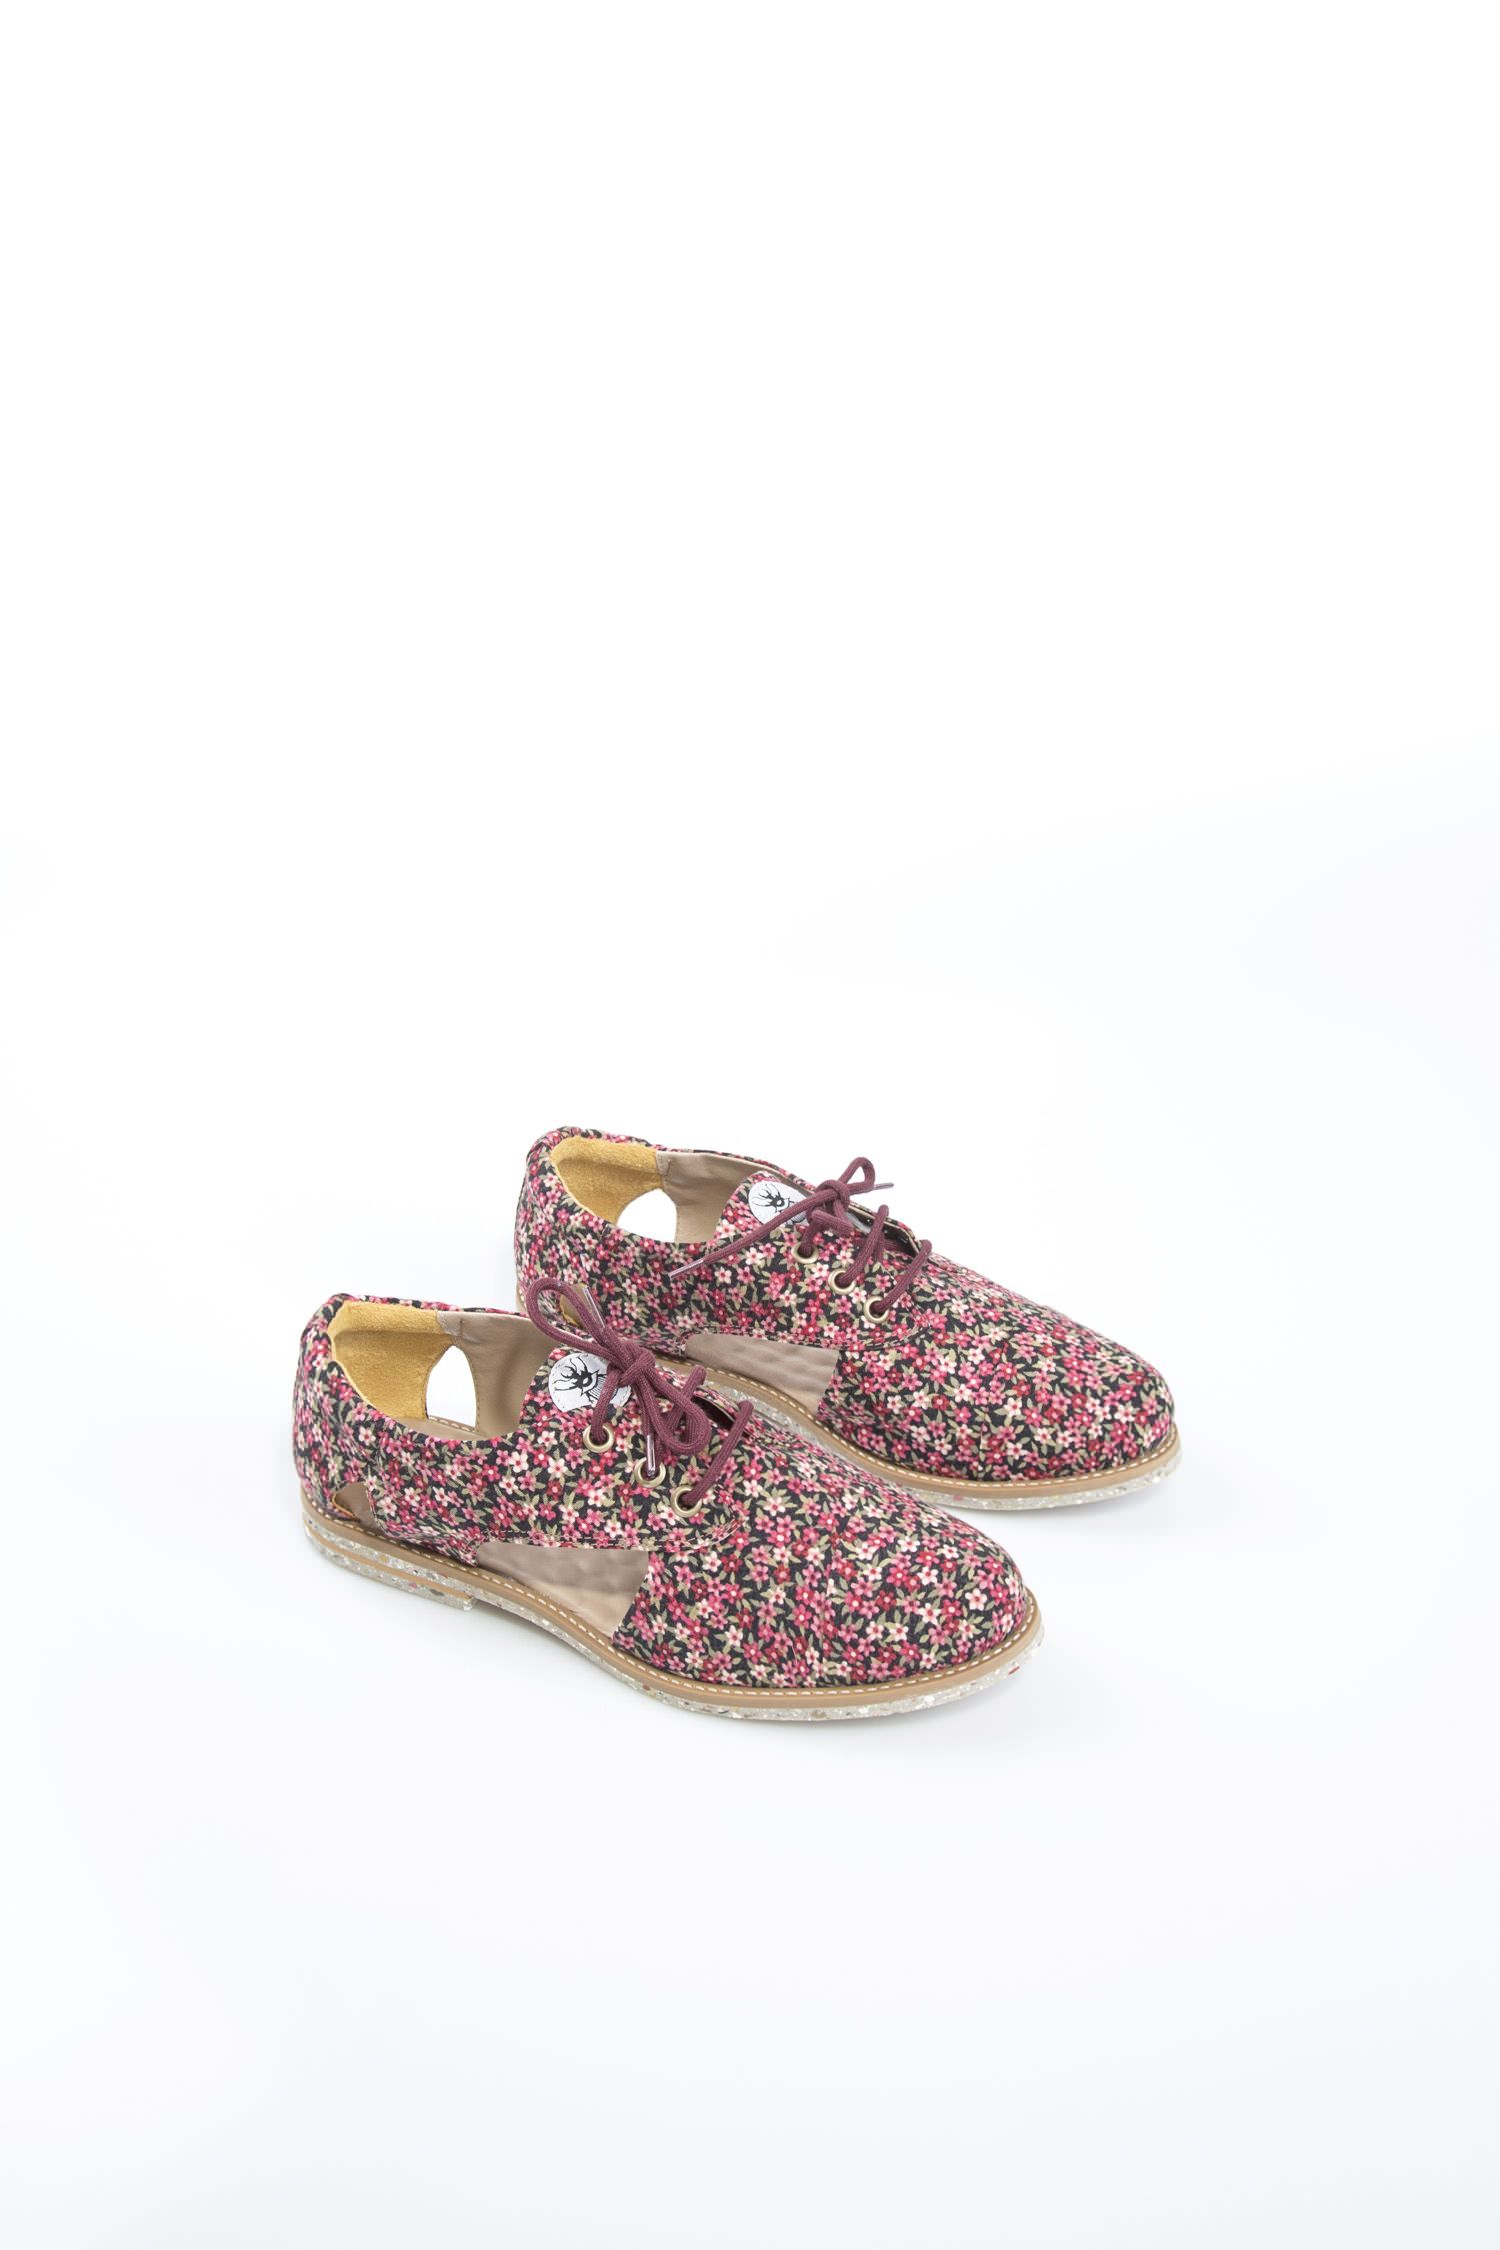 Shoes Insecta Wishlist Shoes Pinterest Birthday Insecta Ef04nZq